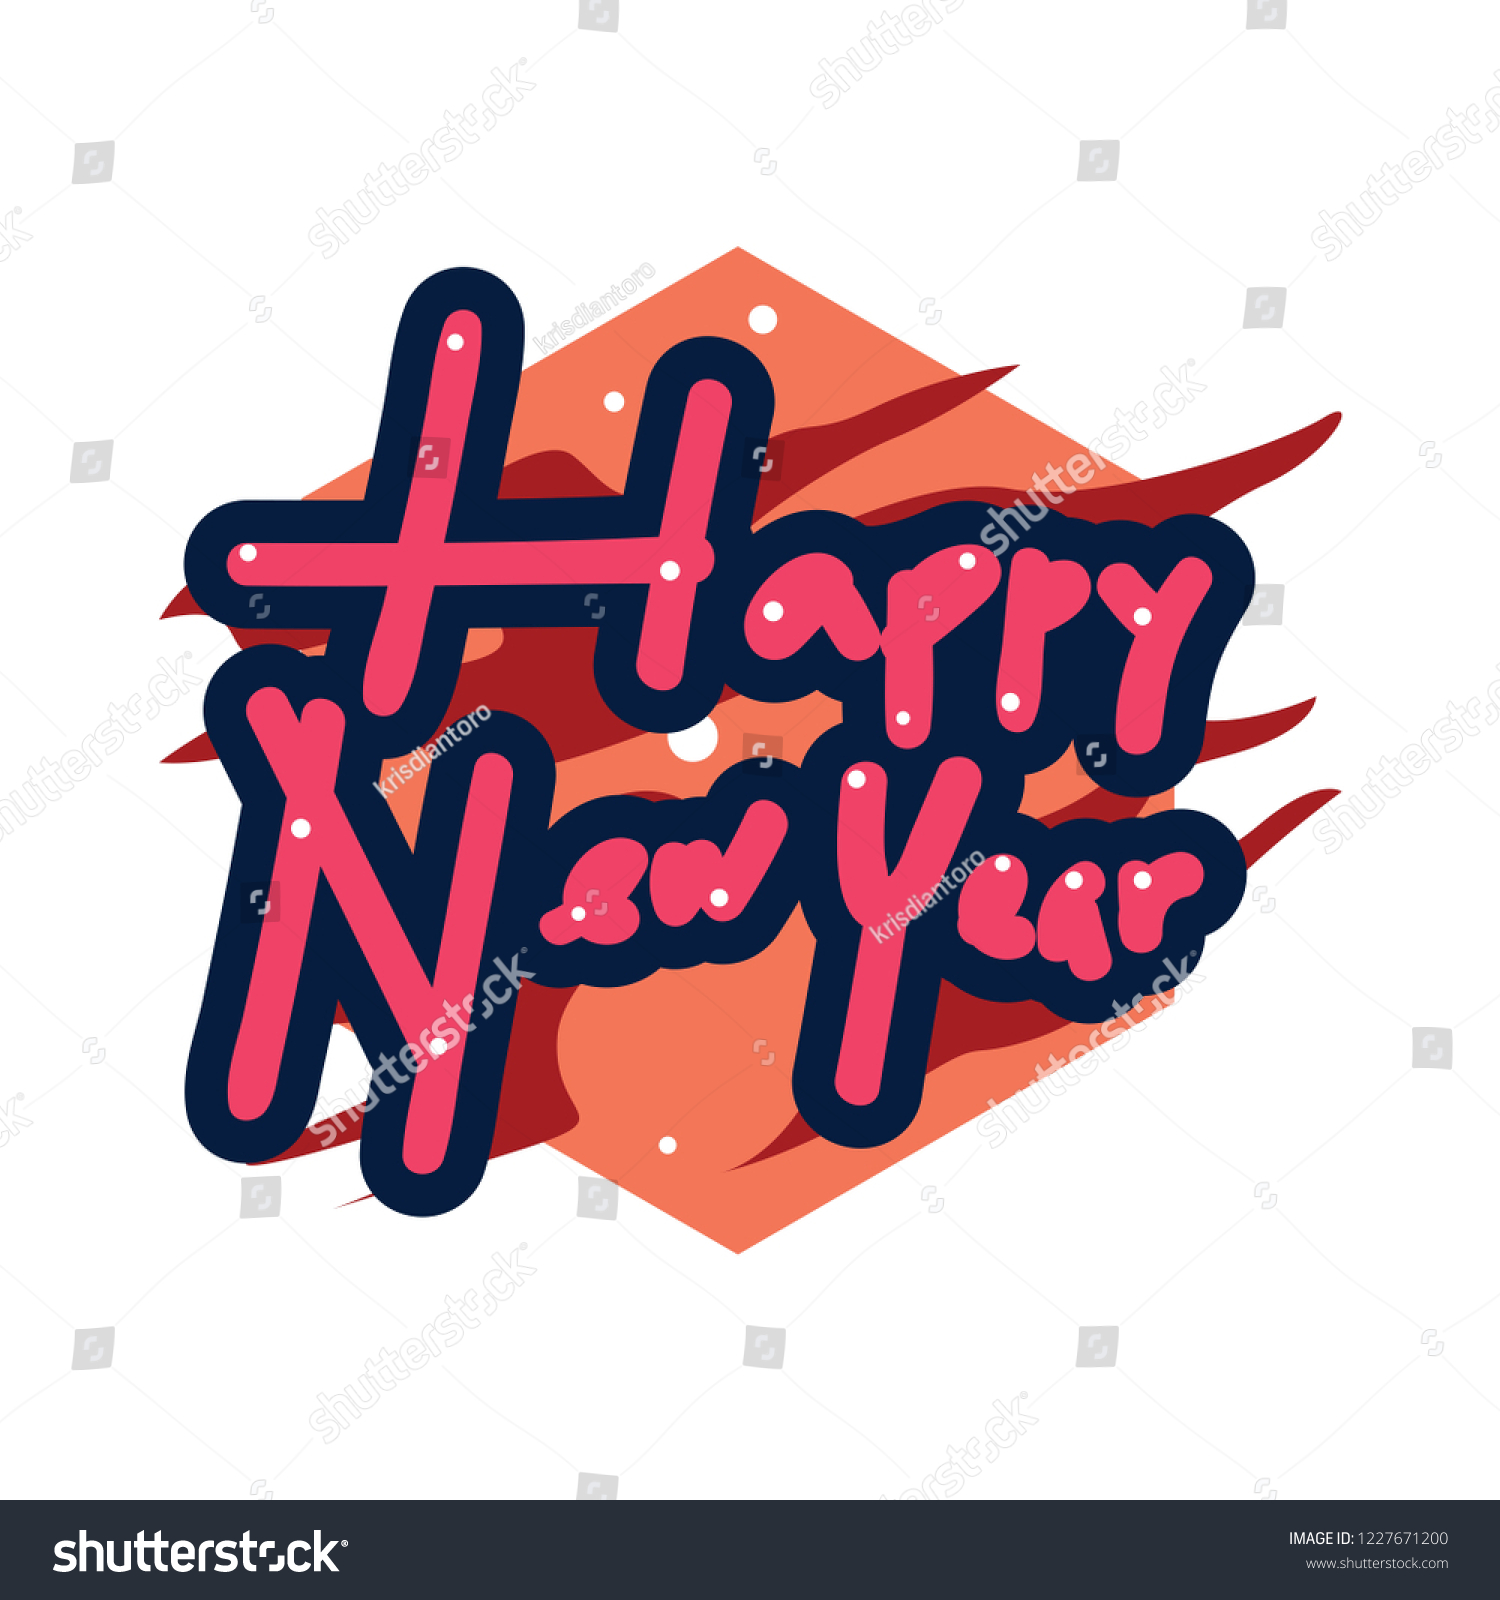 Happy new year stickers a sticker with a design that says happy new year new year stickers with trumpet ornament design new year stickers with colorful